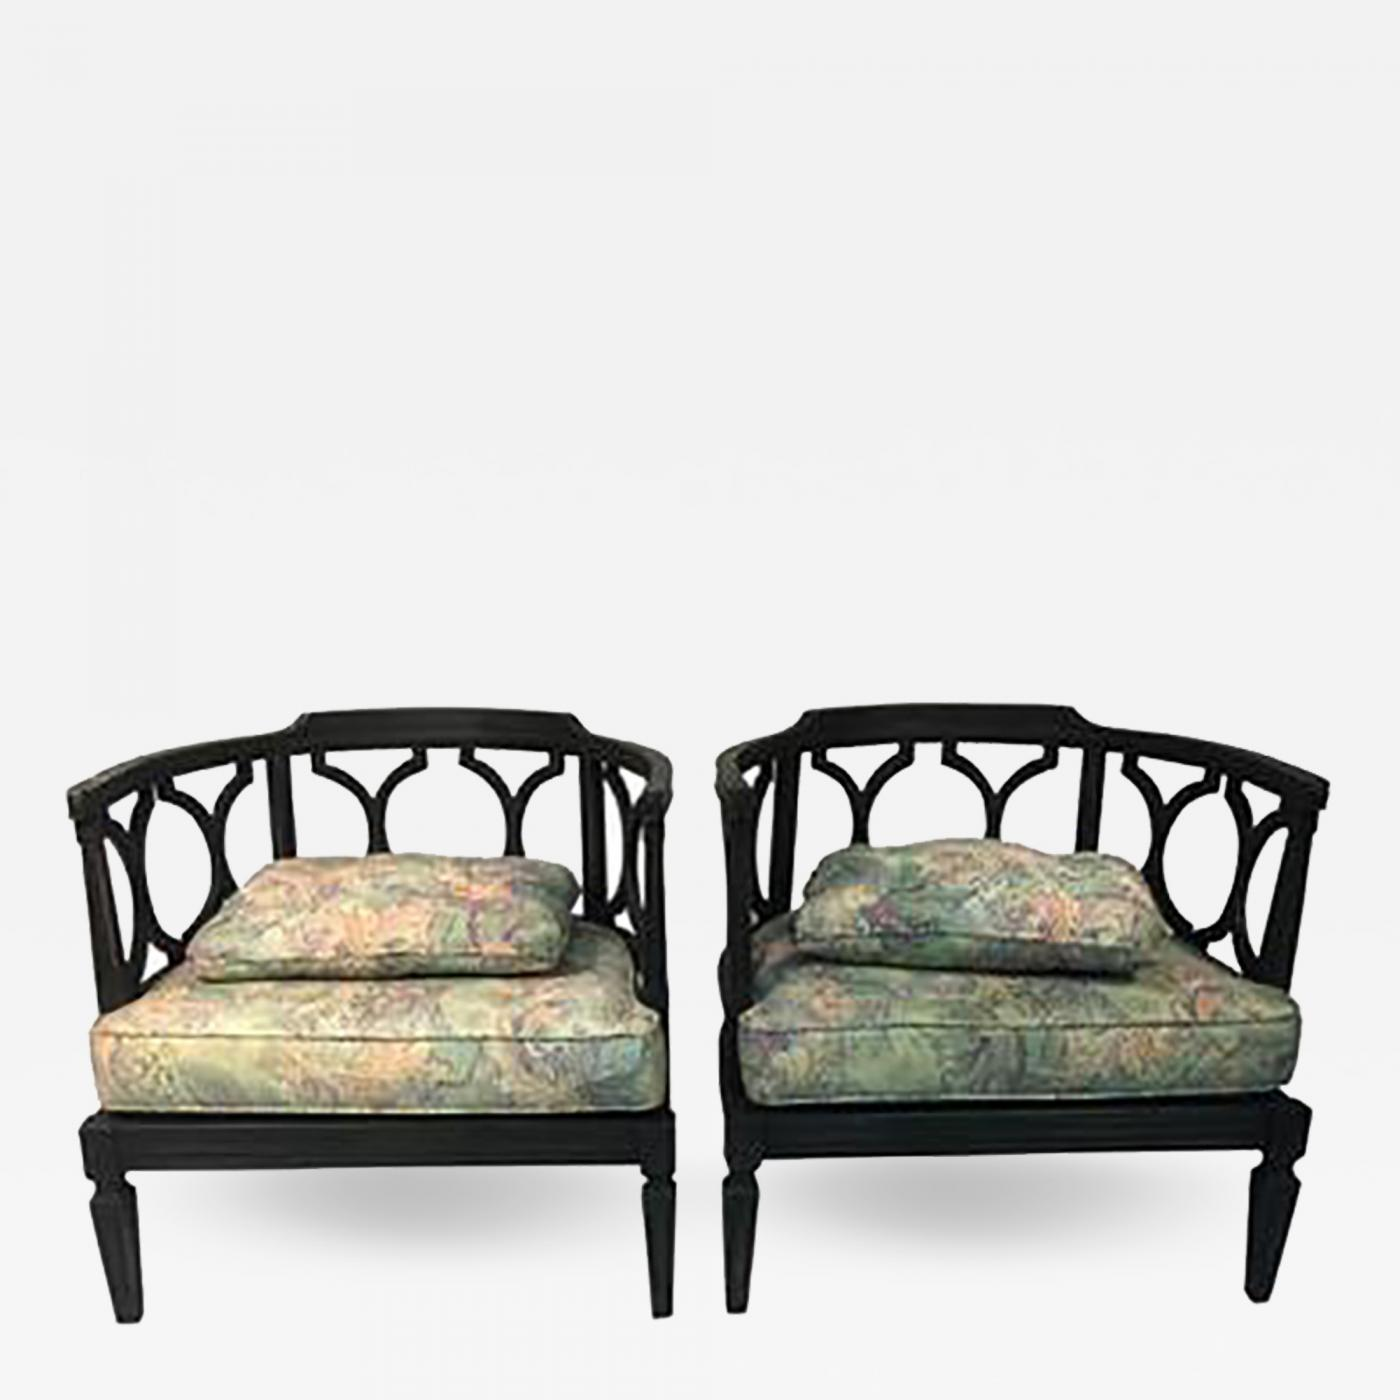 Listings / Furniture / Seating / Armchairs